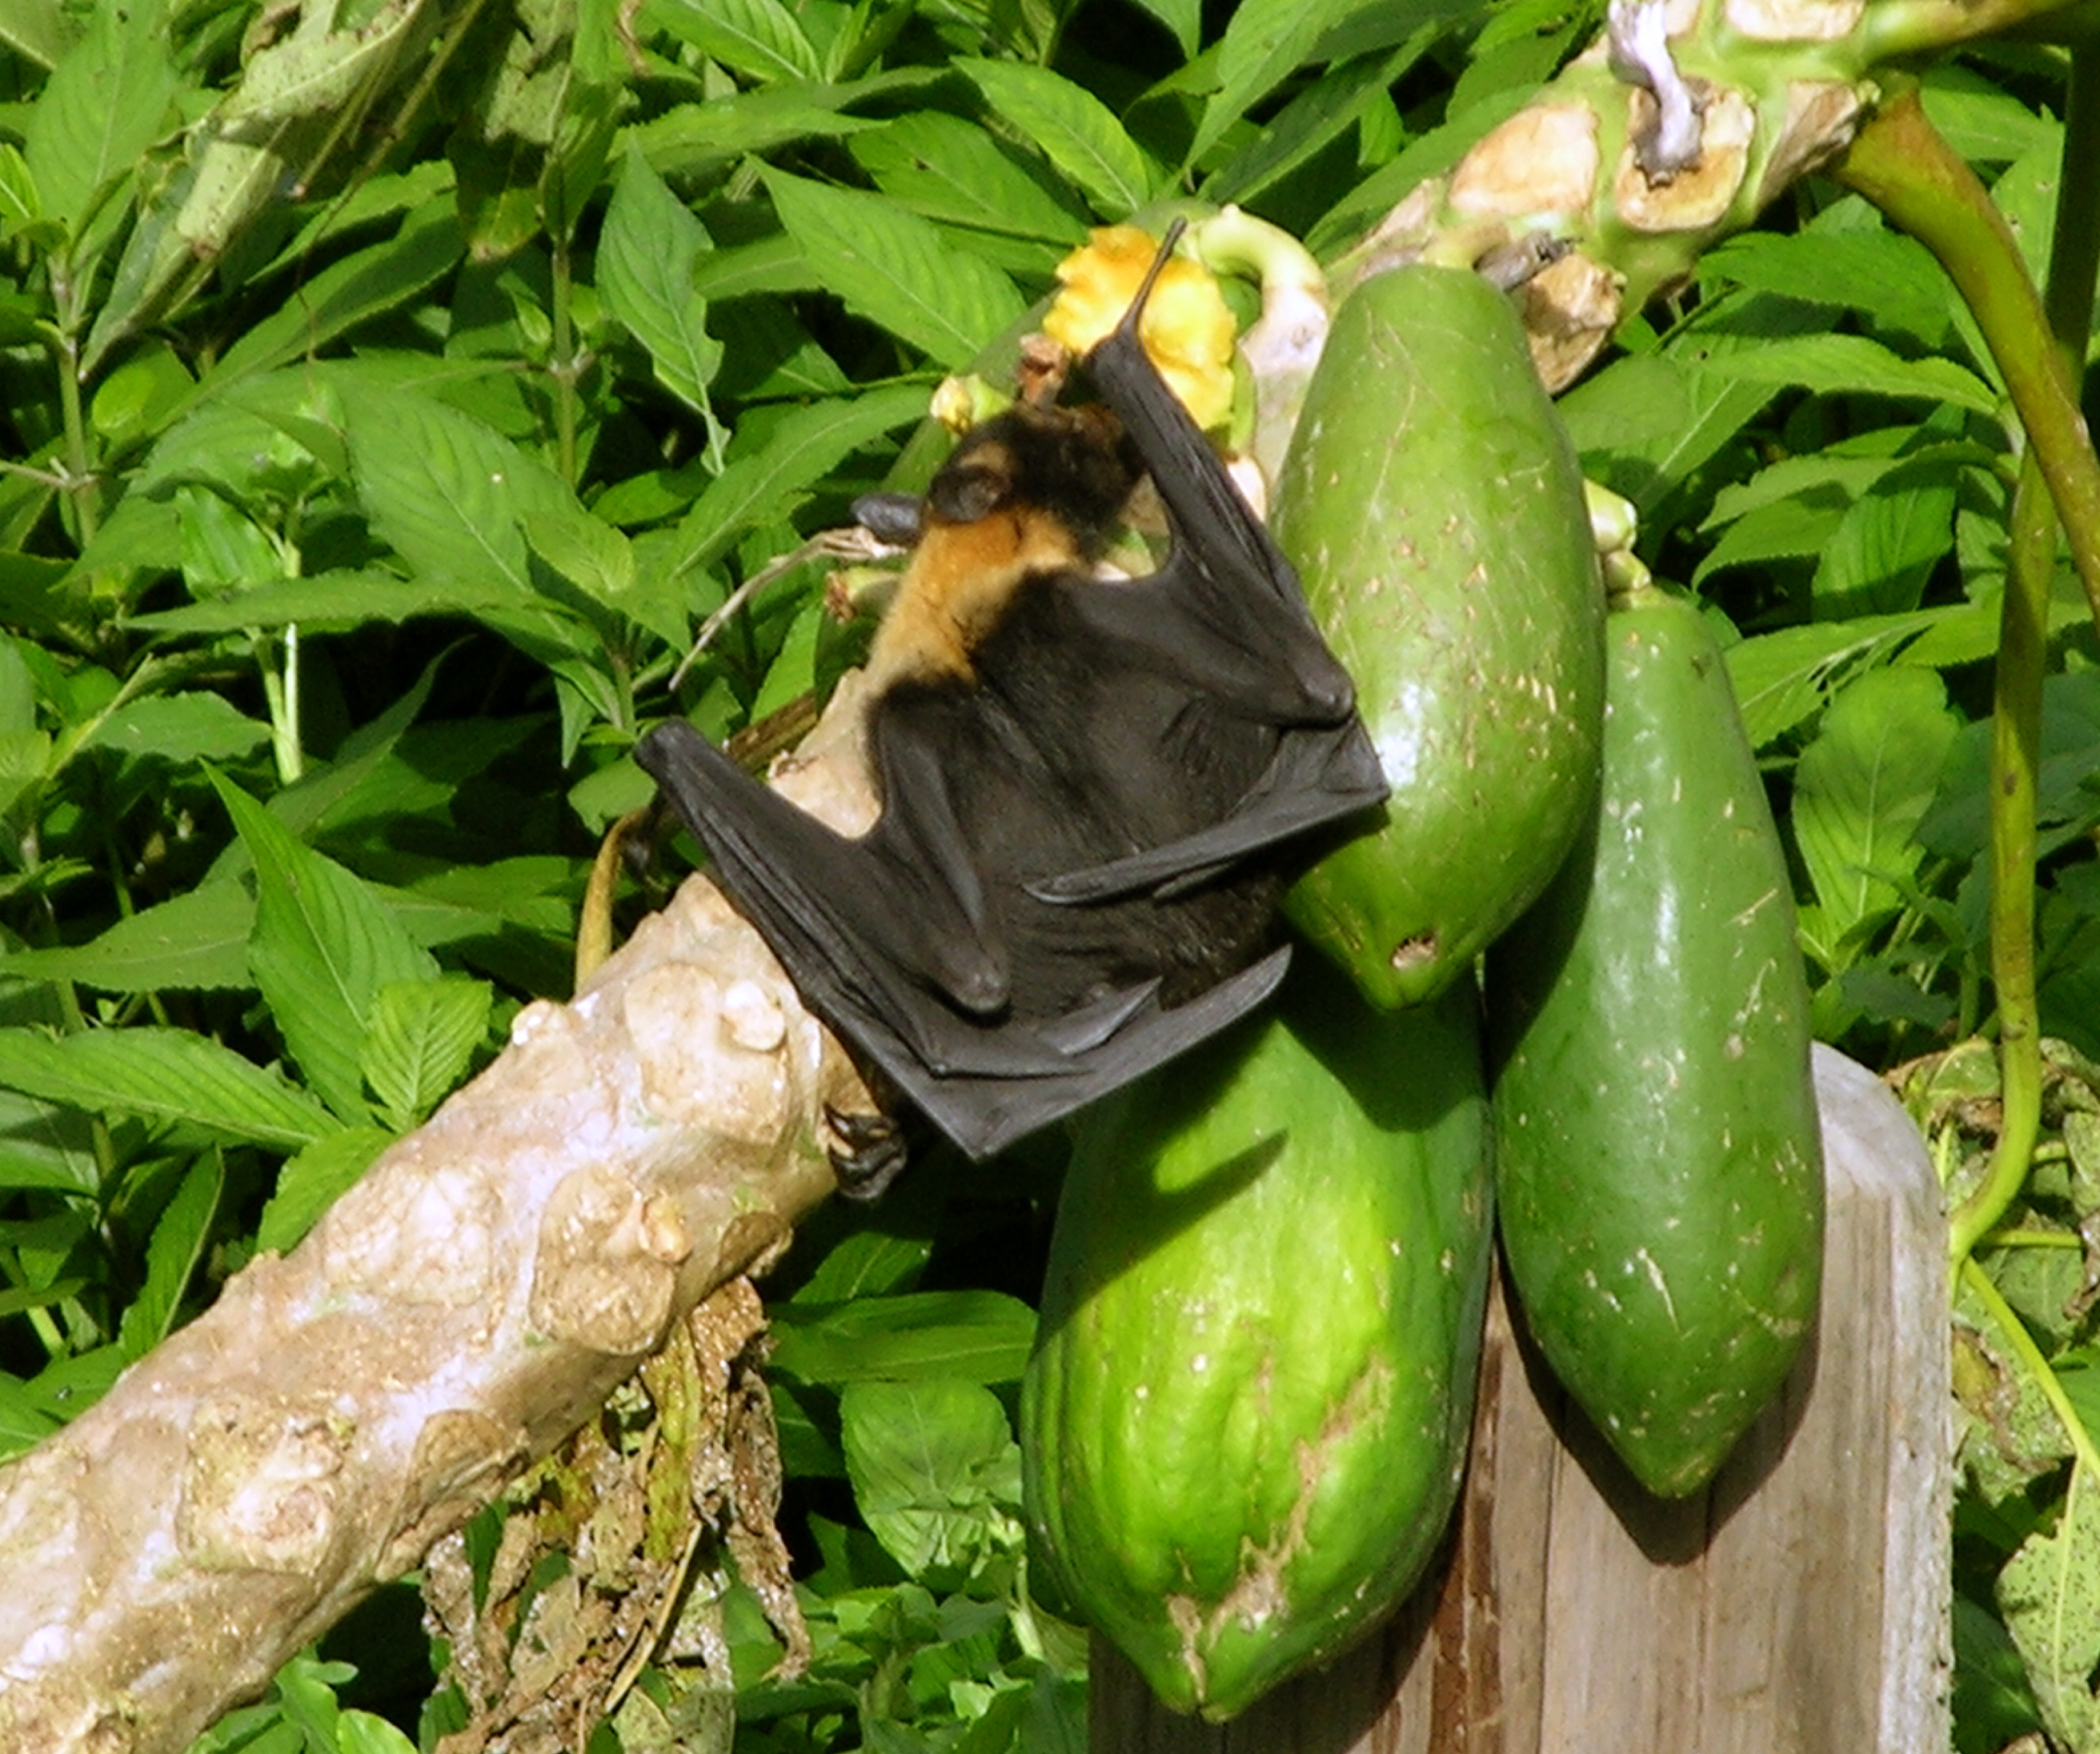 Bat venturing out in daylight to feed on papayas.